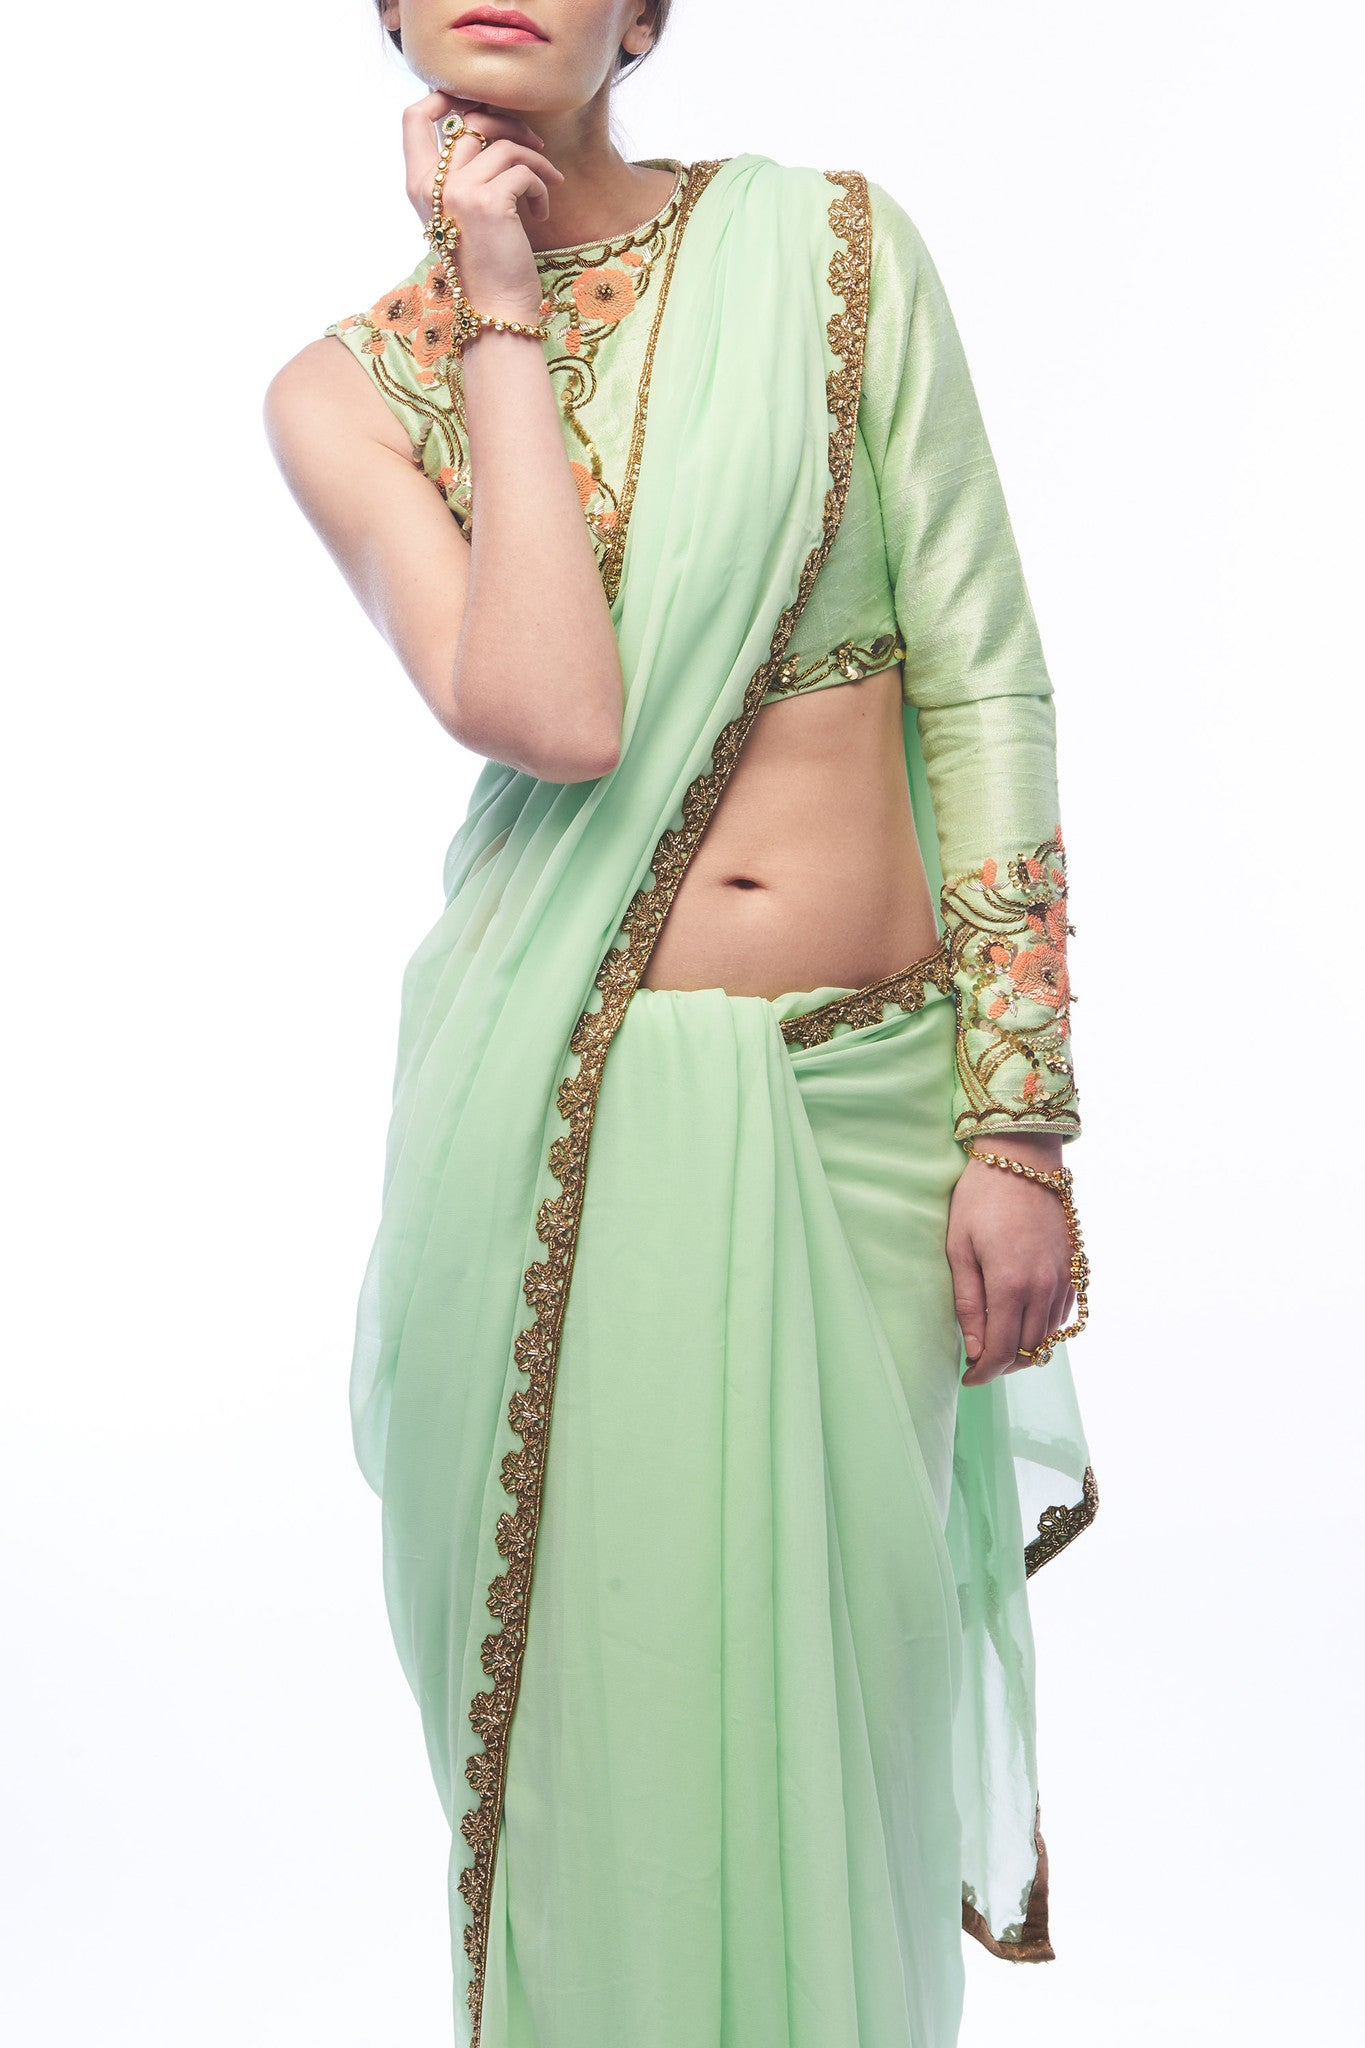 Pistachio Saree and Blouse - CloseUp